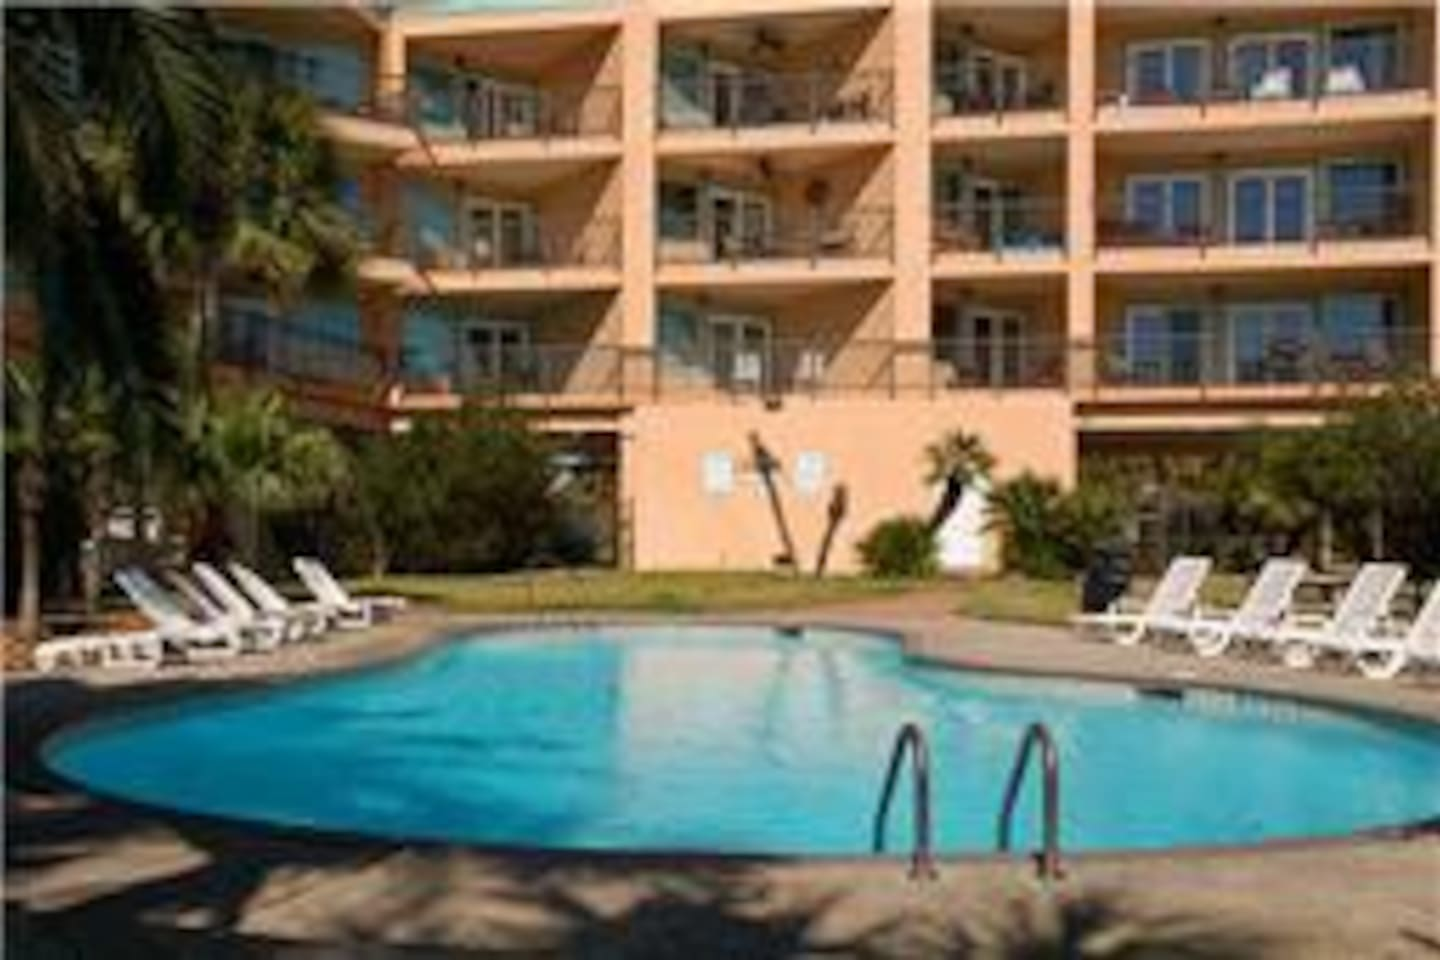 Sunrise at the Maravilla - East Side Beauty - Condominiums for Rent ...